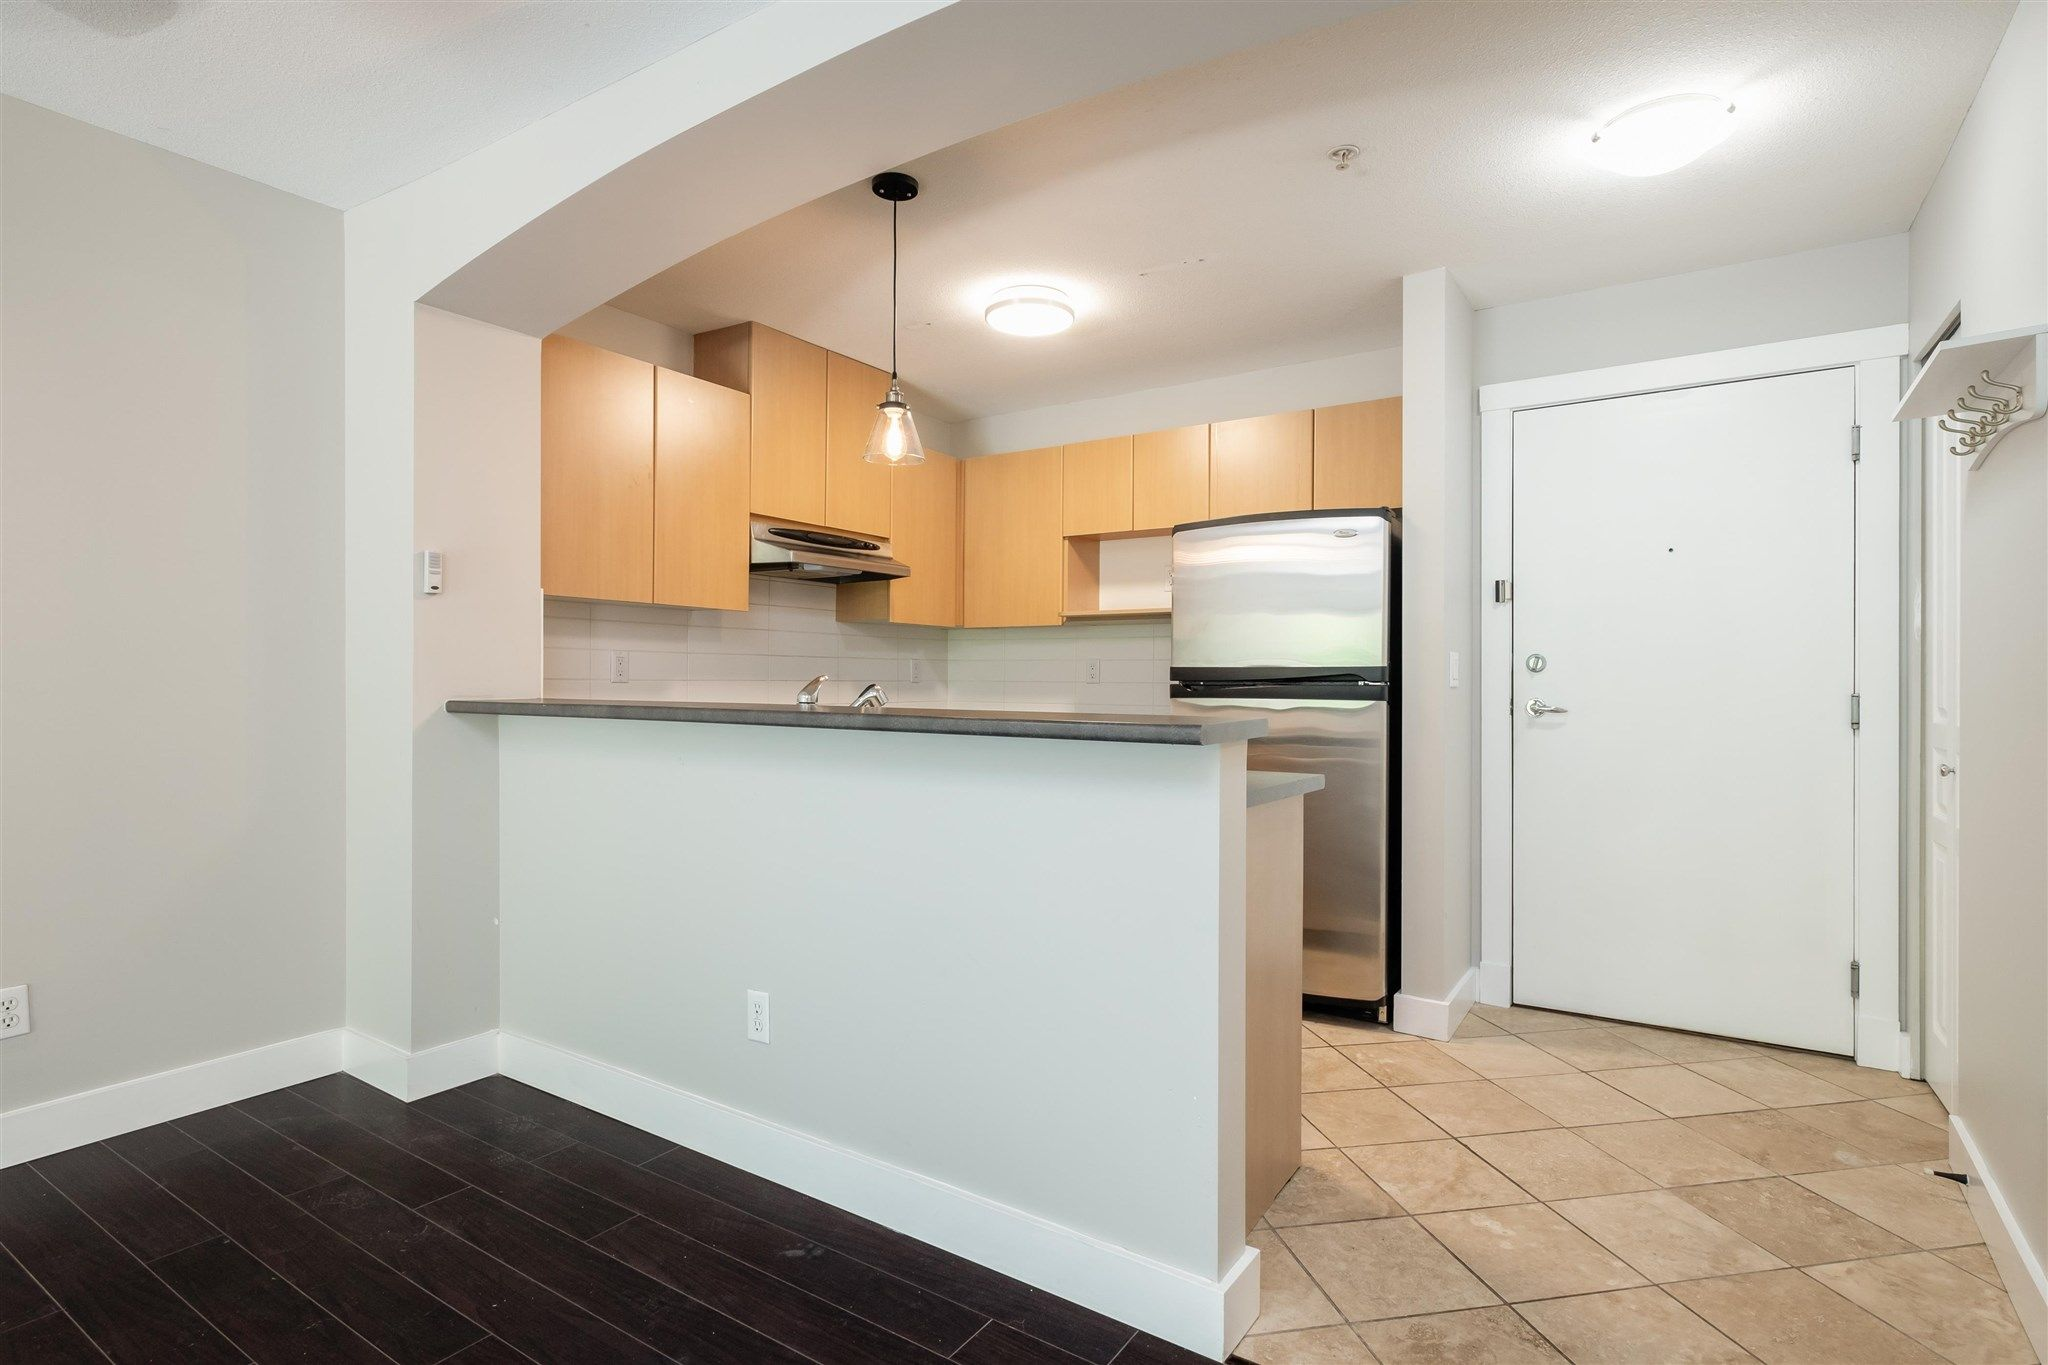 """Photo 7: Photos: 211 9339 UNIVERSITY Crescent in Burnaby: Simon Fraser Univer. Condo for sale in """"HARMONY"""" (Burnaby North)  : MLS®# R2597666"""